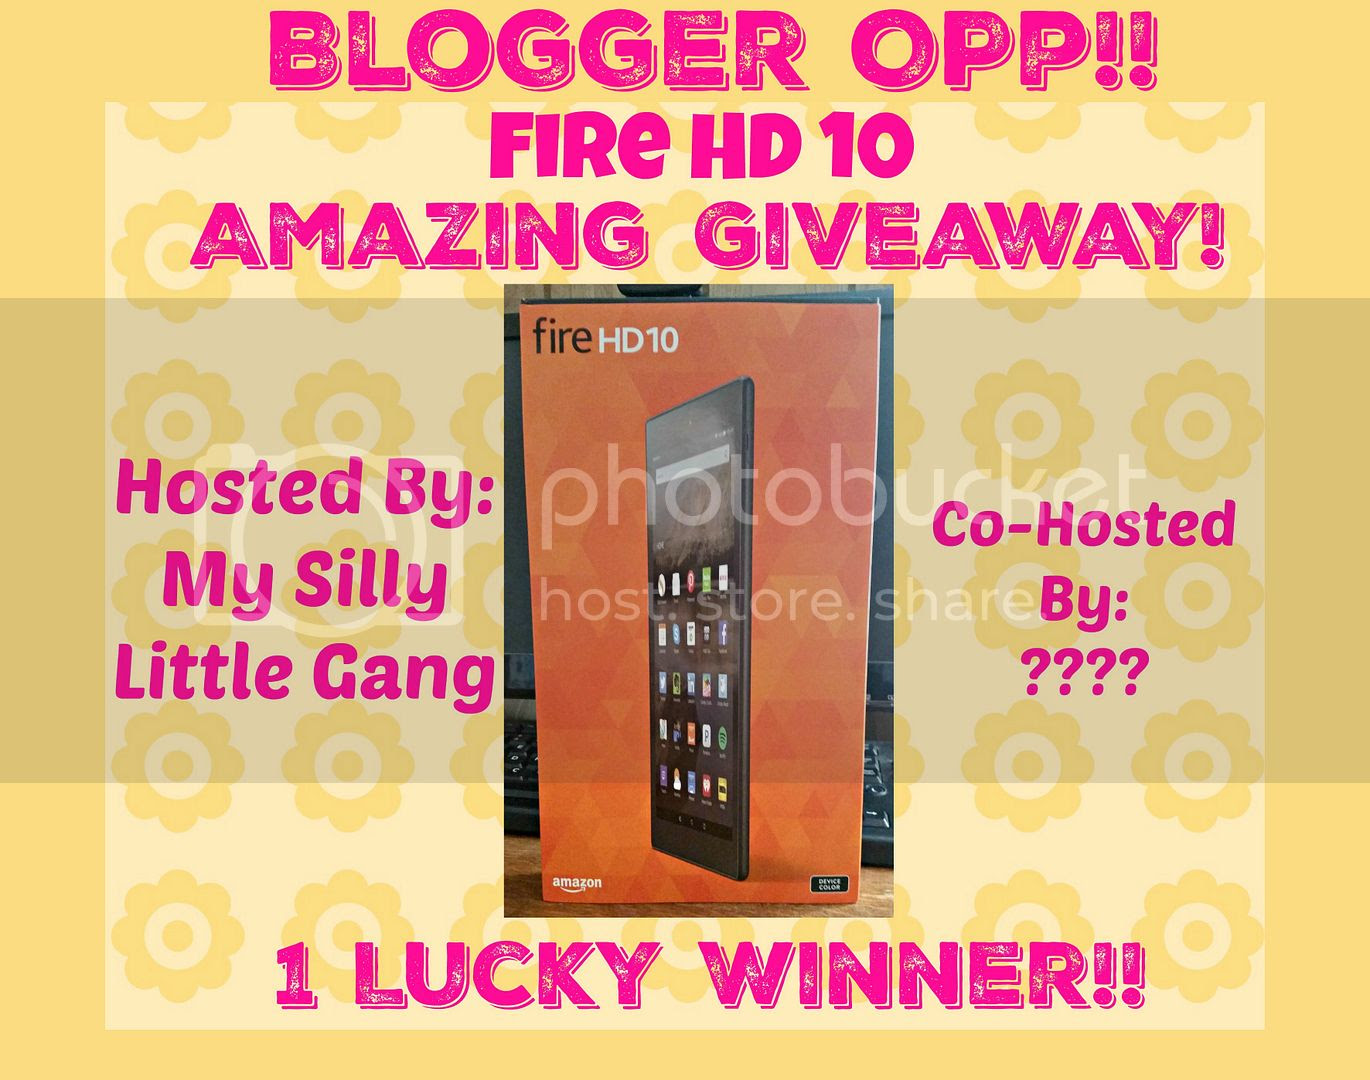 Blogger Opp Amazing Fire HD 10 Giveaway!